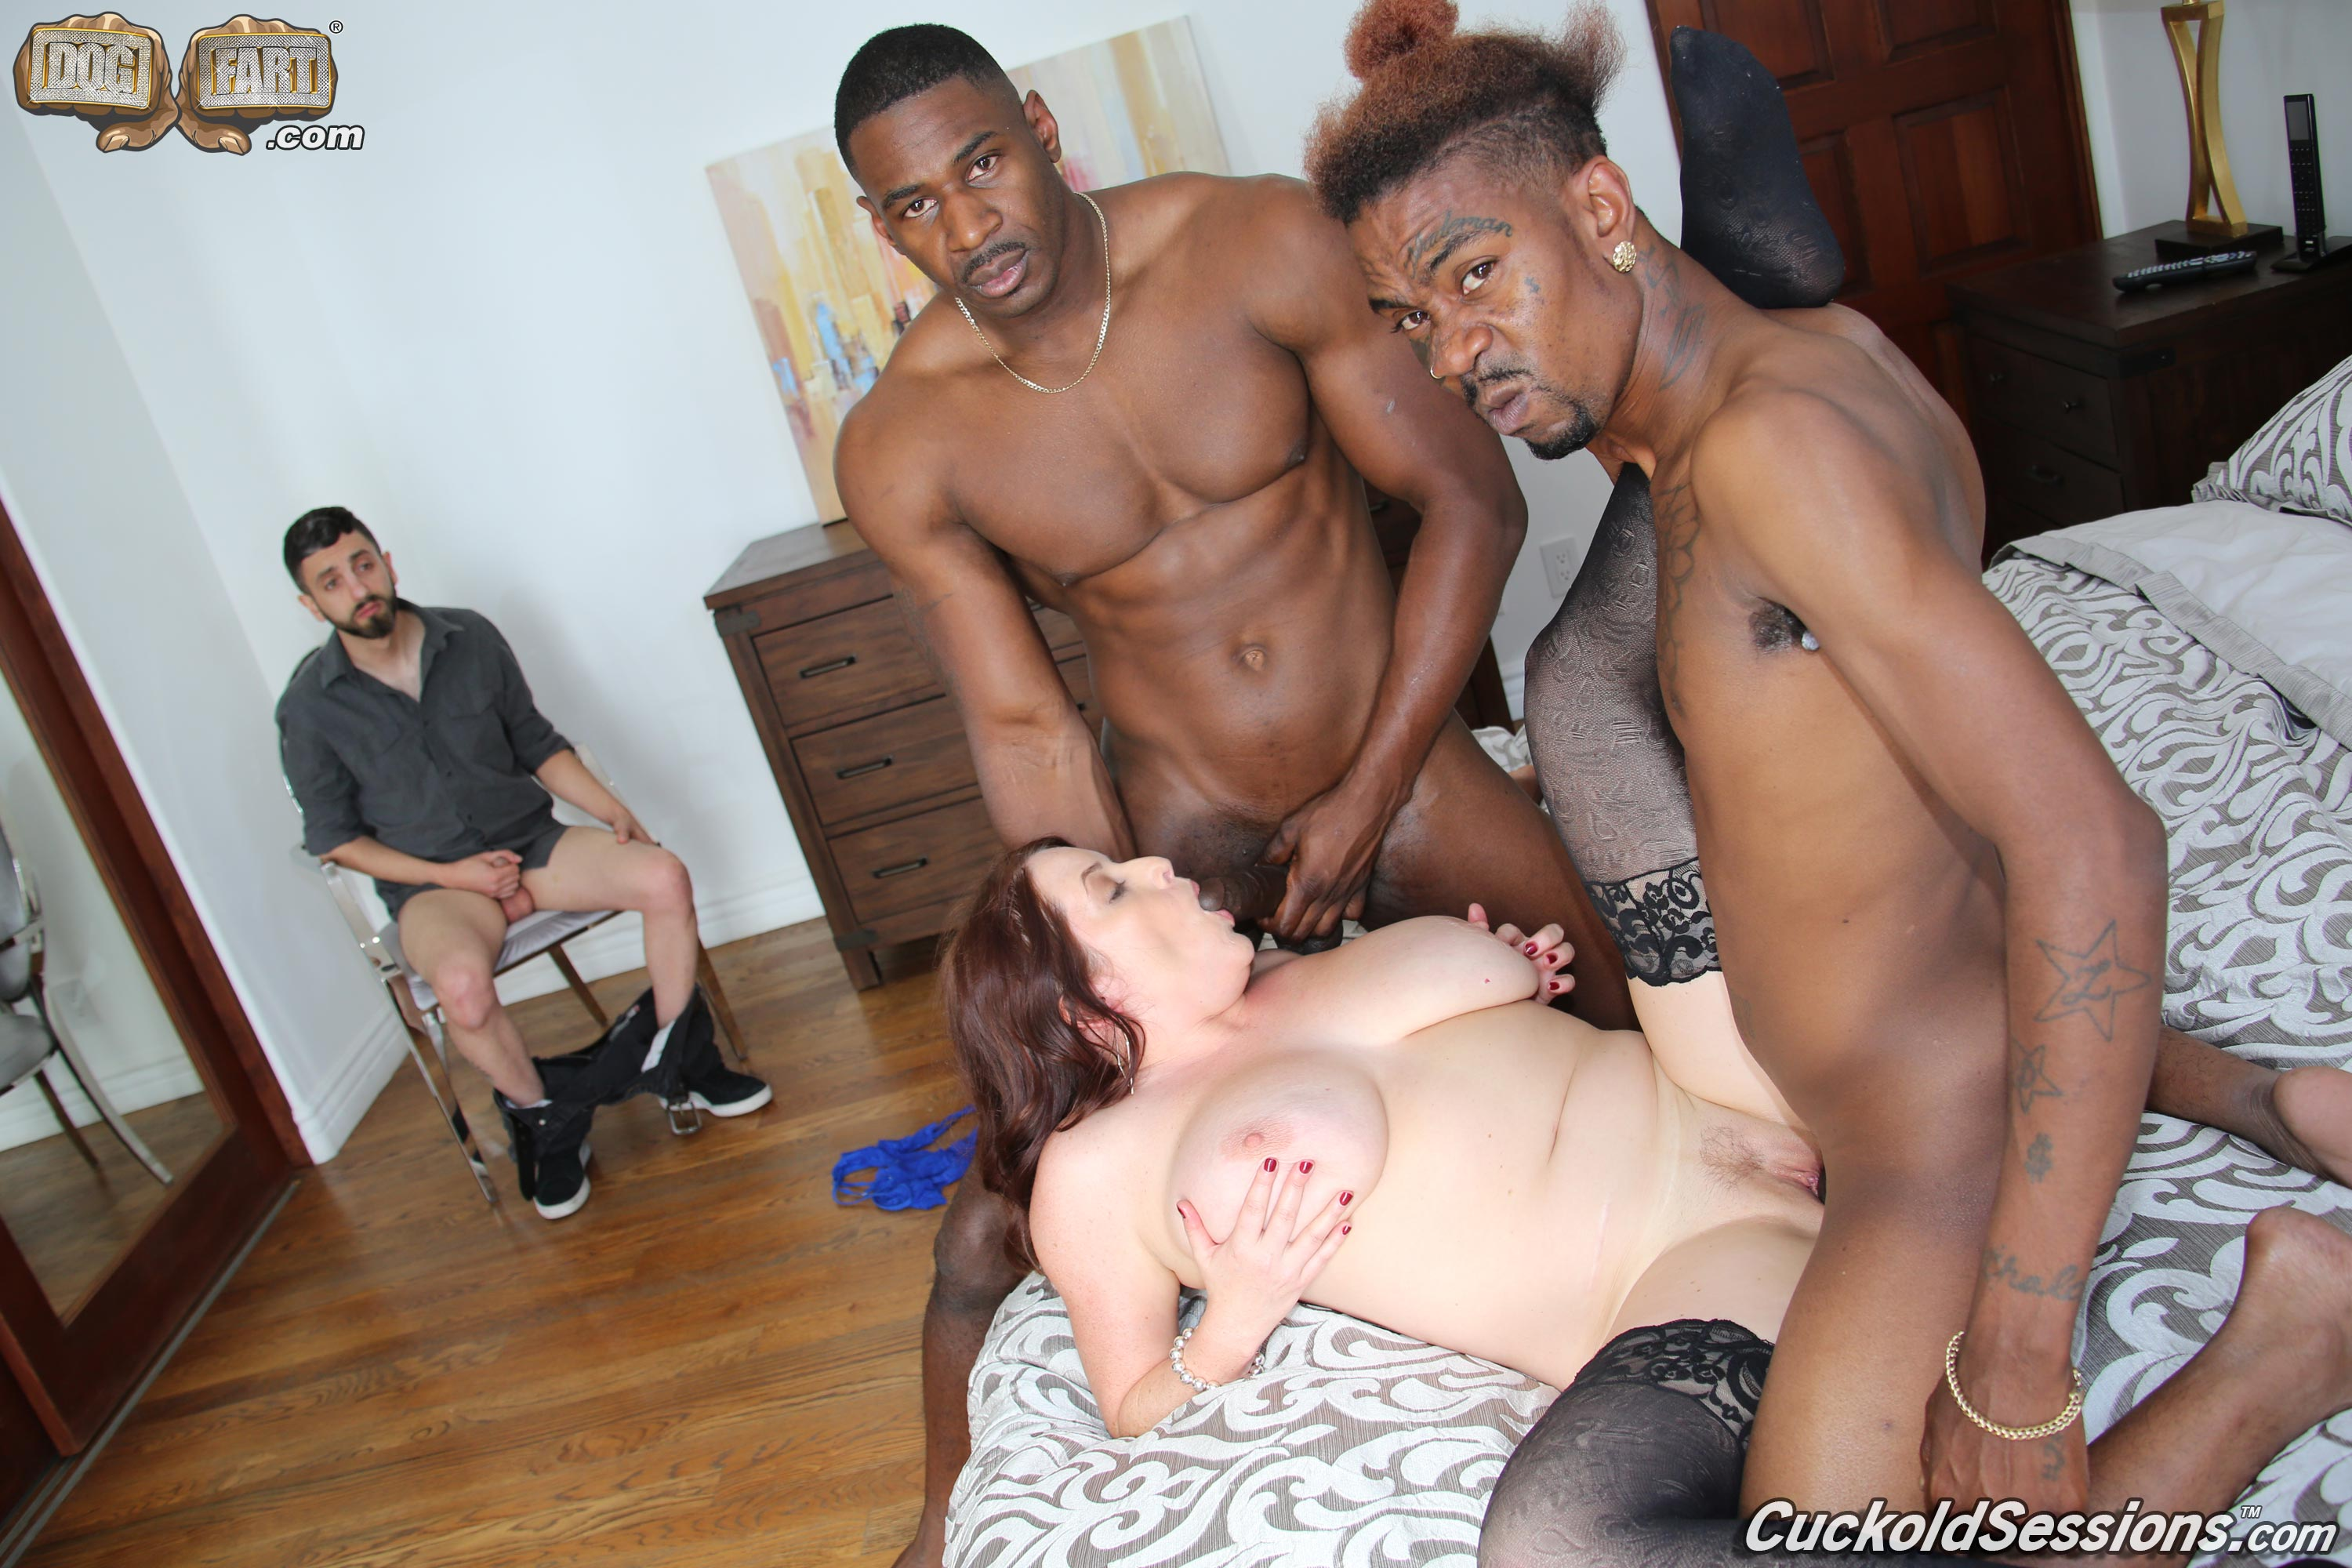 Maggie Green - Cuckold Sessions 125225-9339